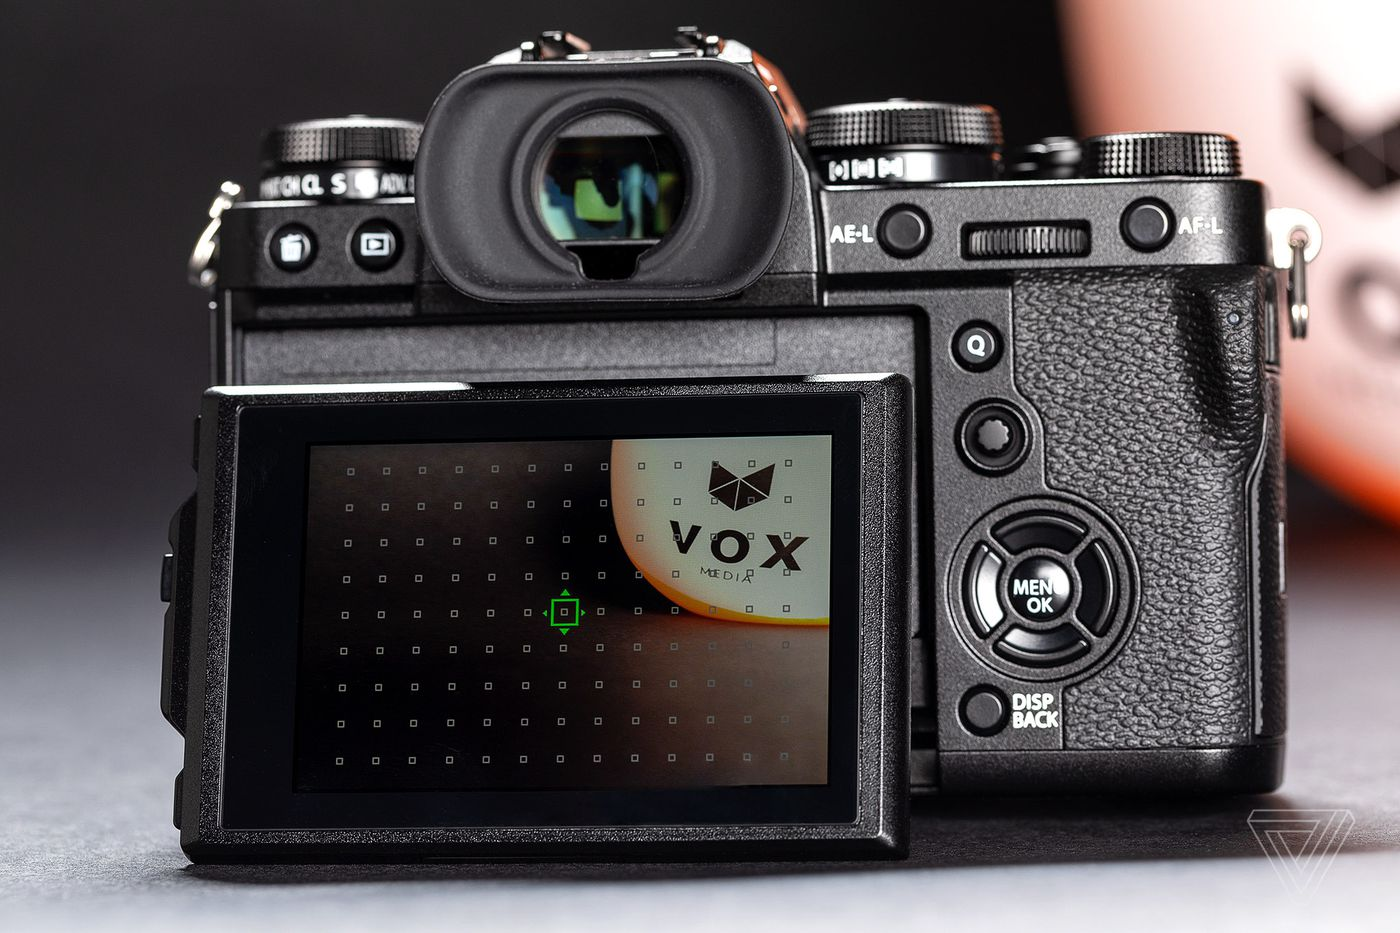 Fujifilm X-T3 review: the do-everything camera - The Verge